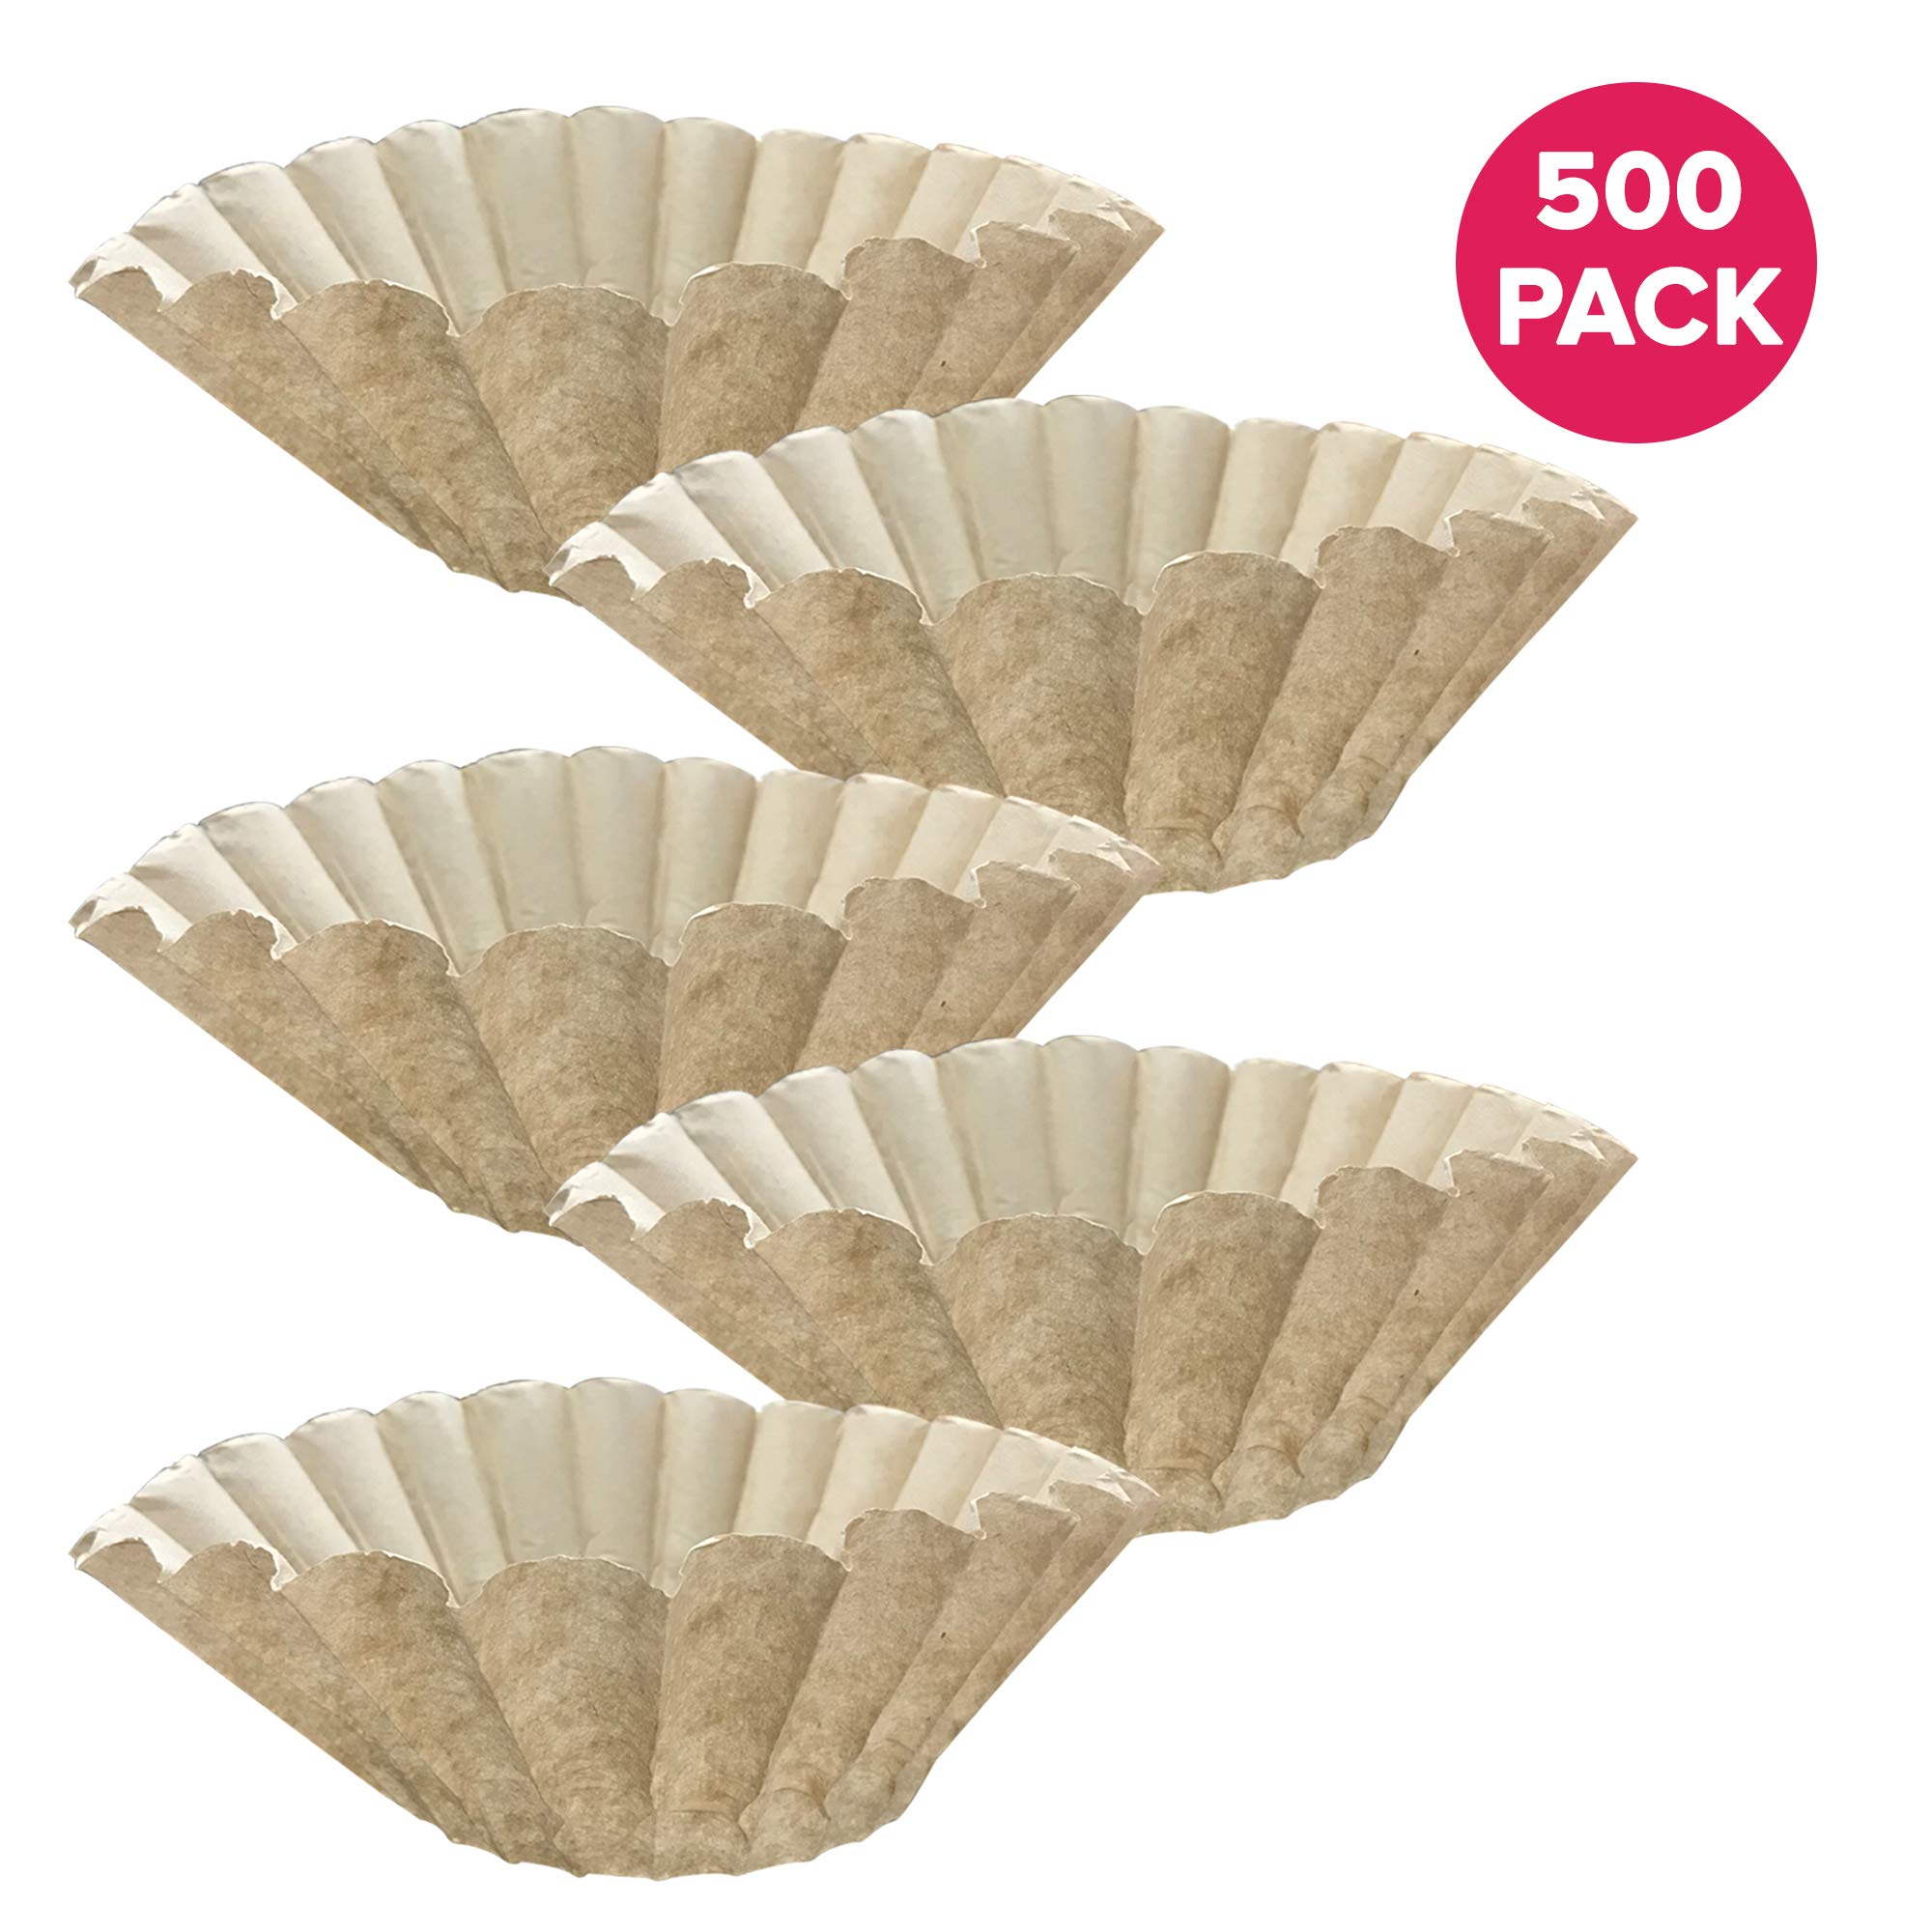 Think Crucial 500PK Replacement for Bunn Unbleached Paper Coffee, Filter Fits 12 Cup Commercial Coffee Brewers, Compatible with Part 1M5002 and 20115.0000,